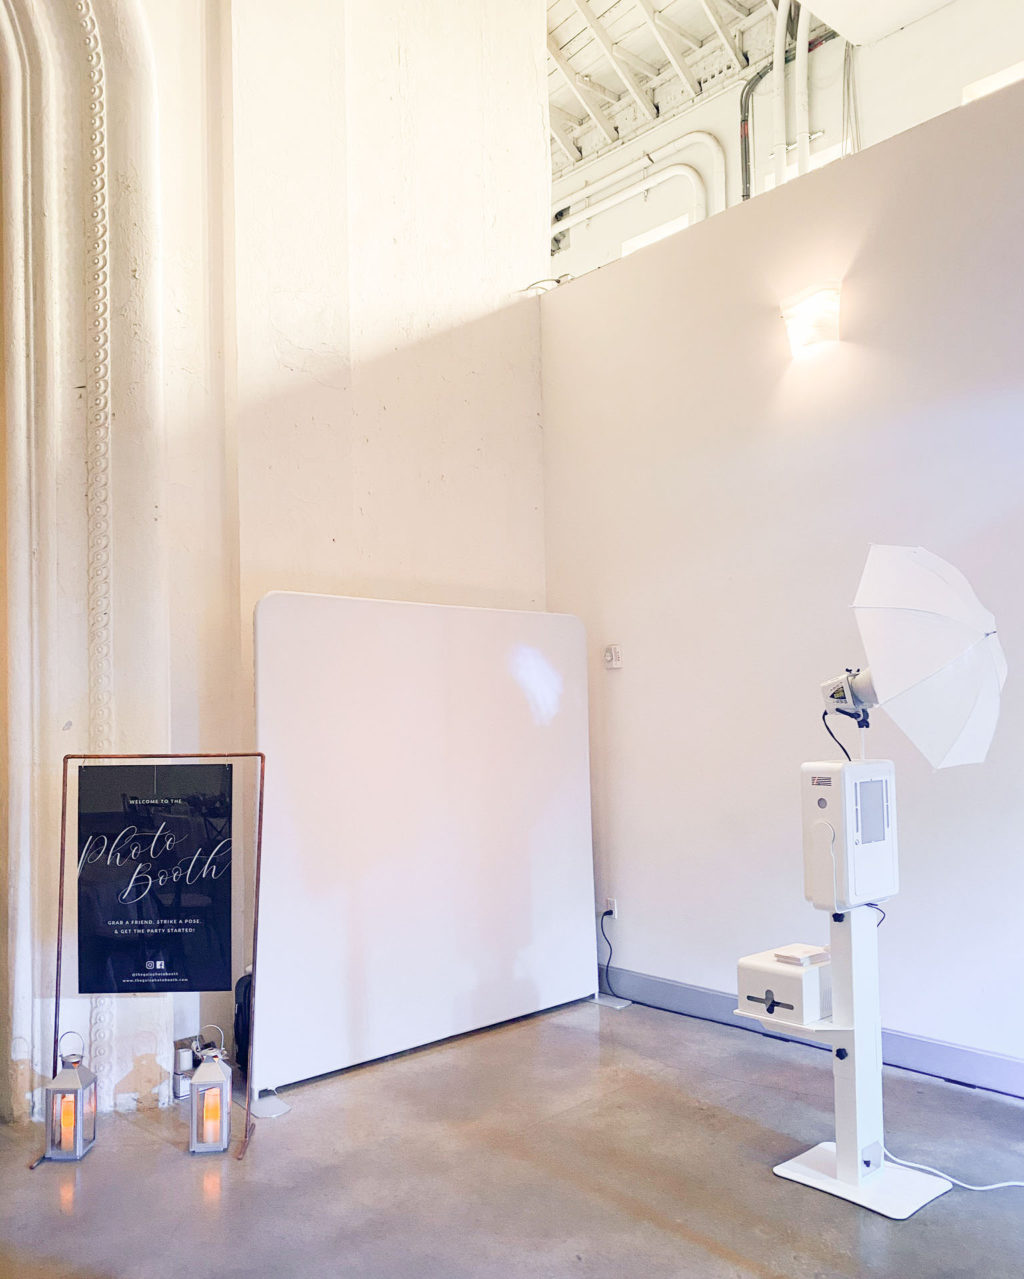 Modern Open Air Photo Booth with White Backdrop Wall  | Tampa Bay Luxury Rental Gala Photo Booth